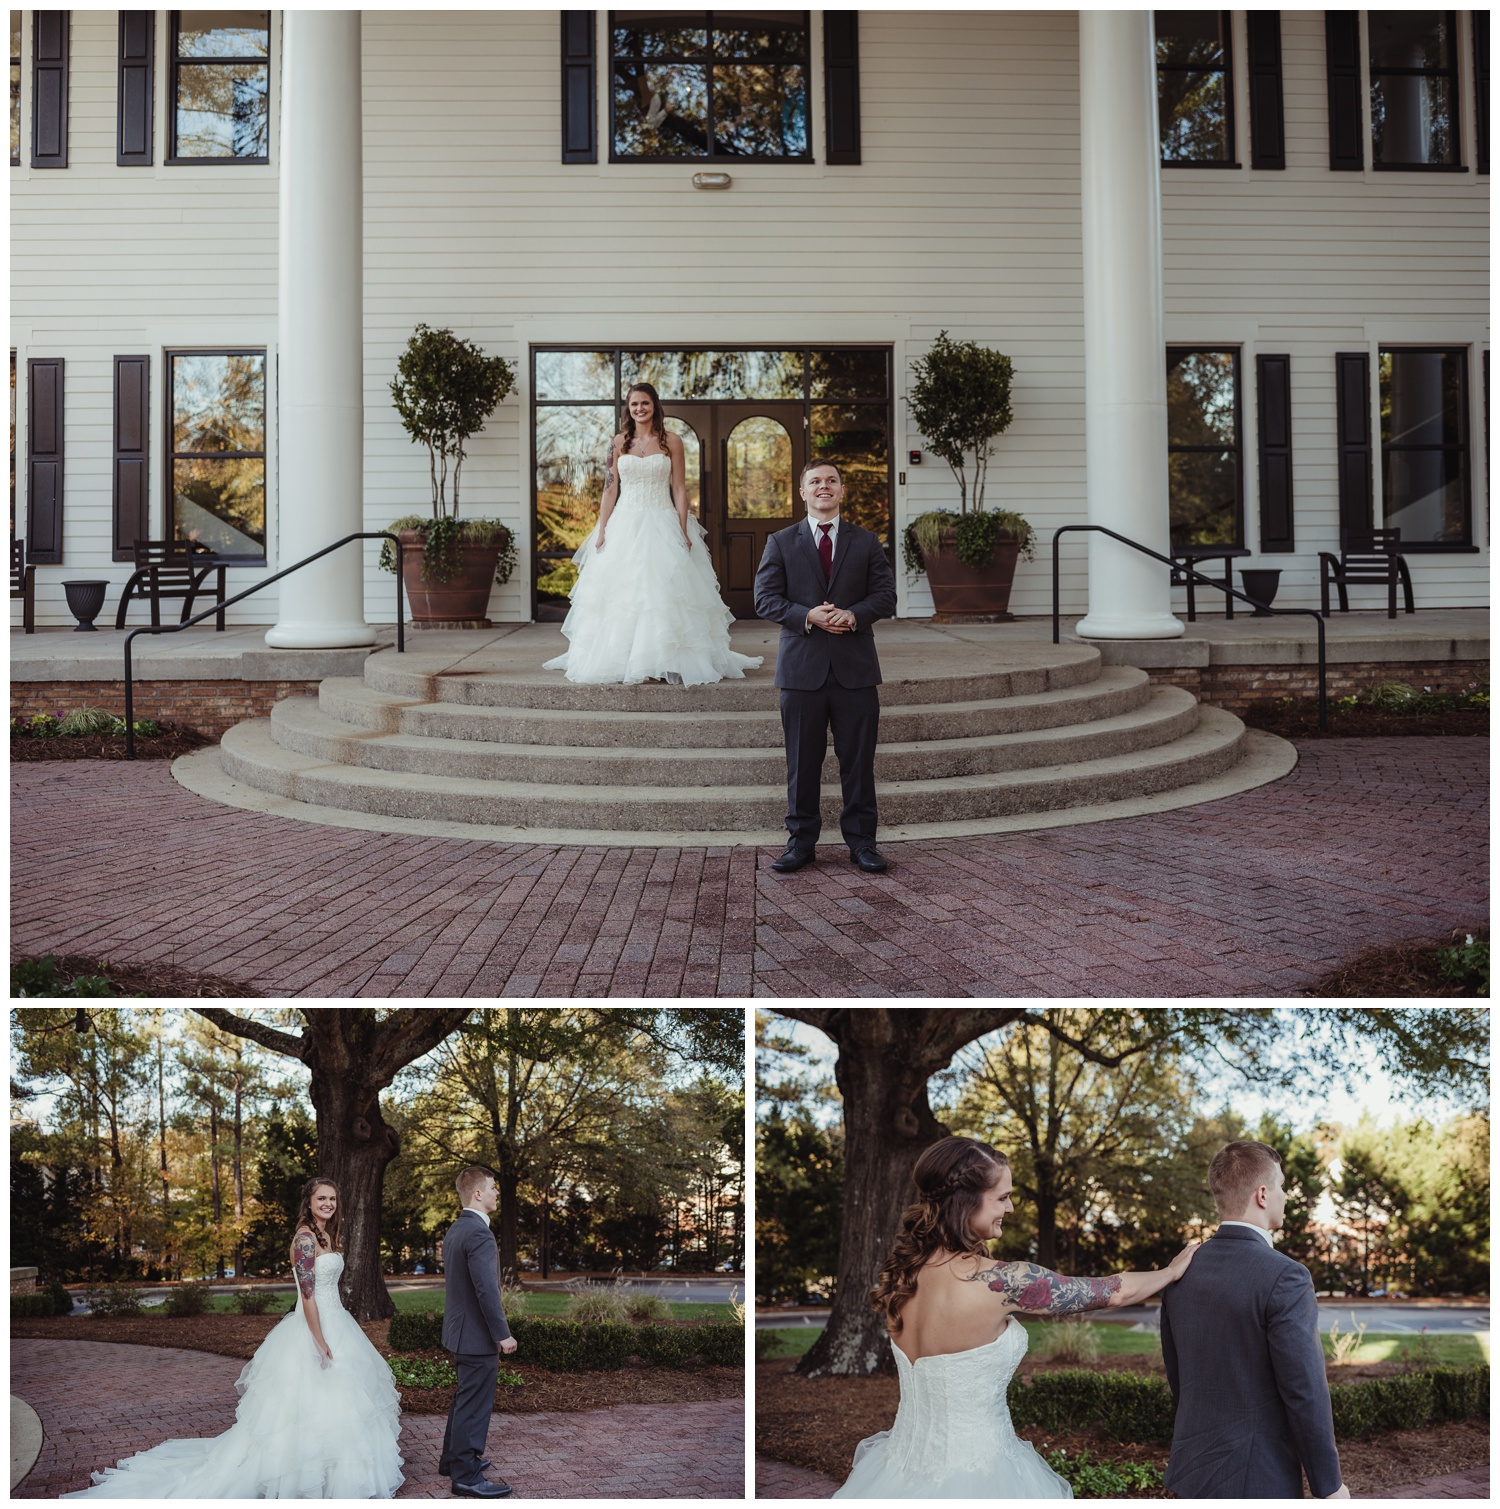 raleigh-wedding-photographer-first-look-1705-east-davids-bridal-caitlyn-and-evan_0020.jpg